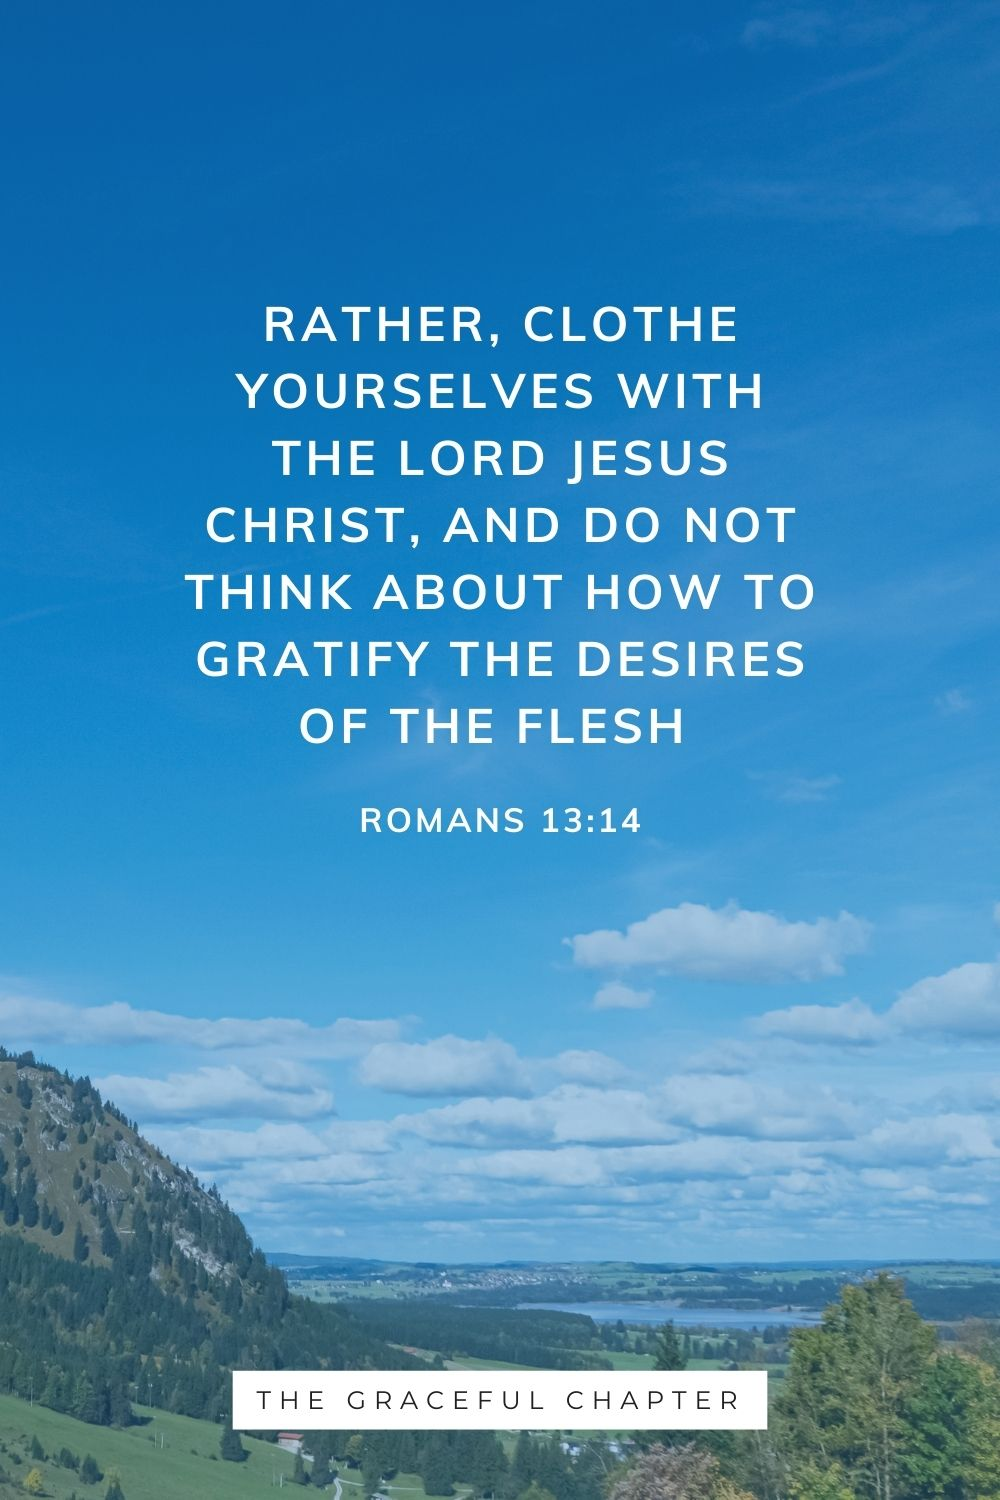 Rather, clothe yourselves with the Lord Jesus Christ, and do not think about how to gratify the desires of the flesh Romans 13:14